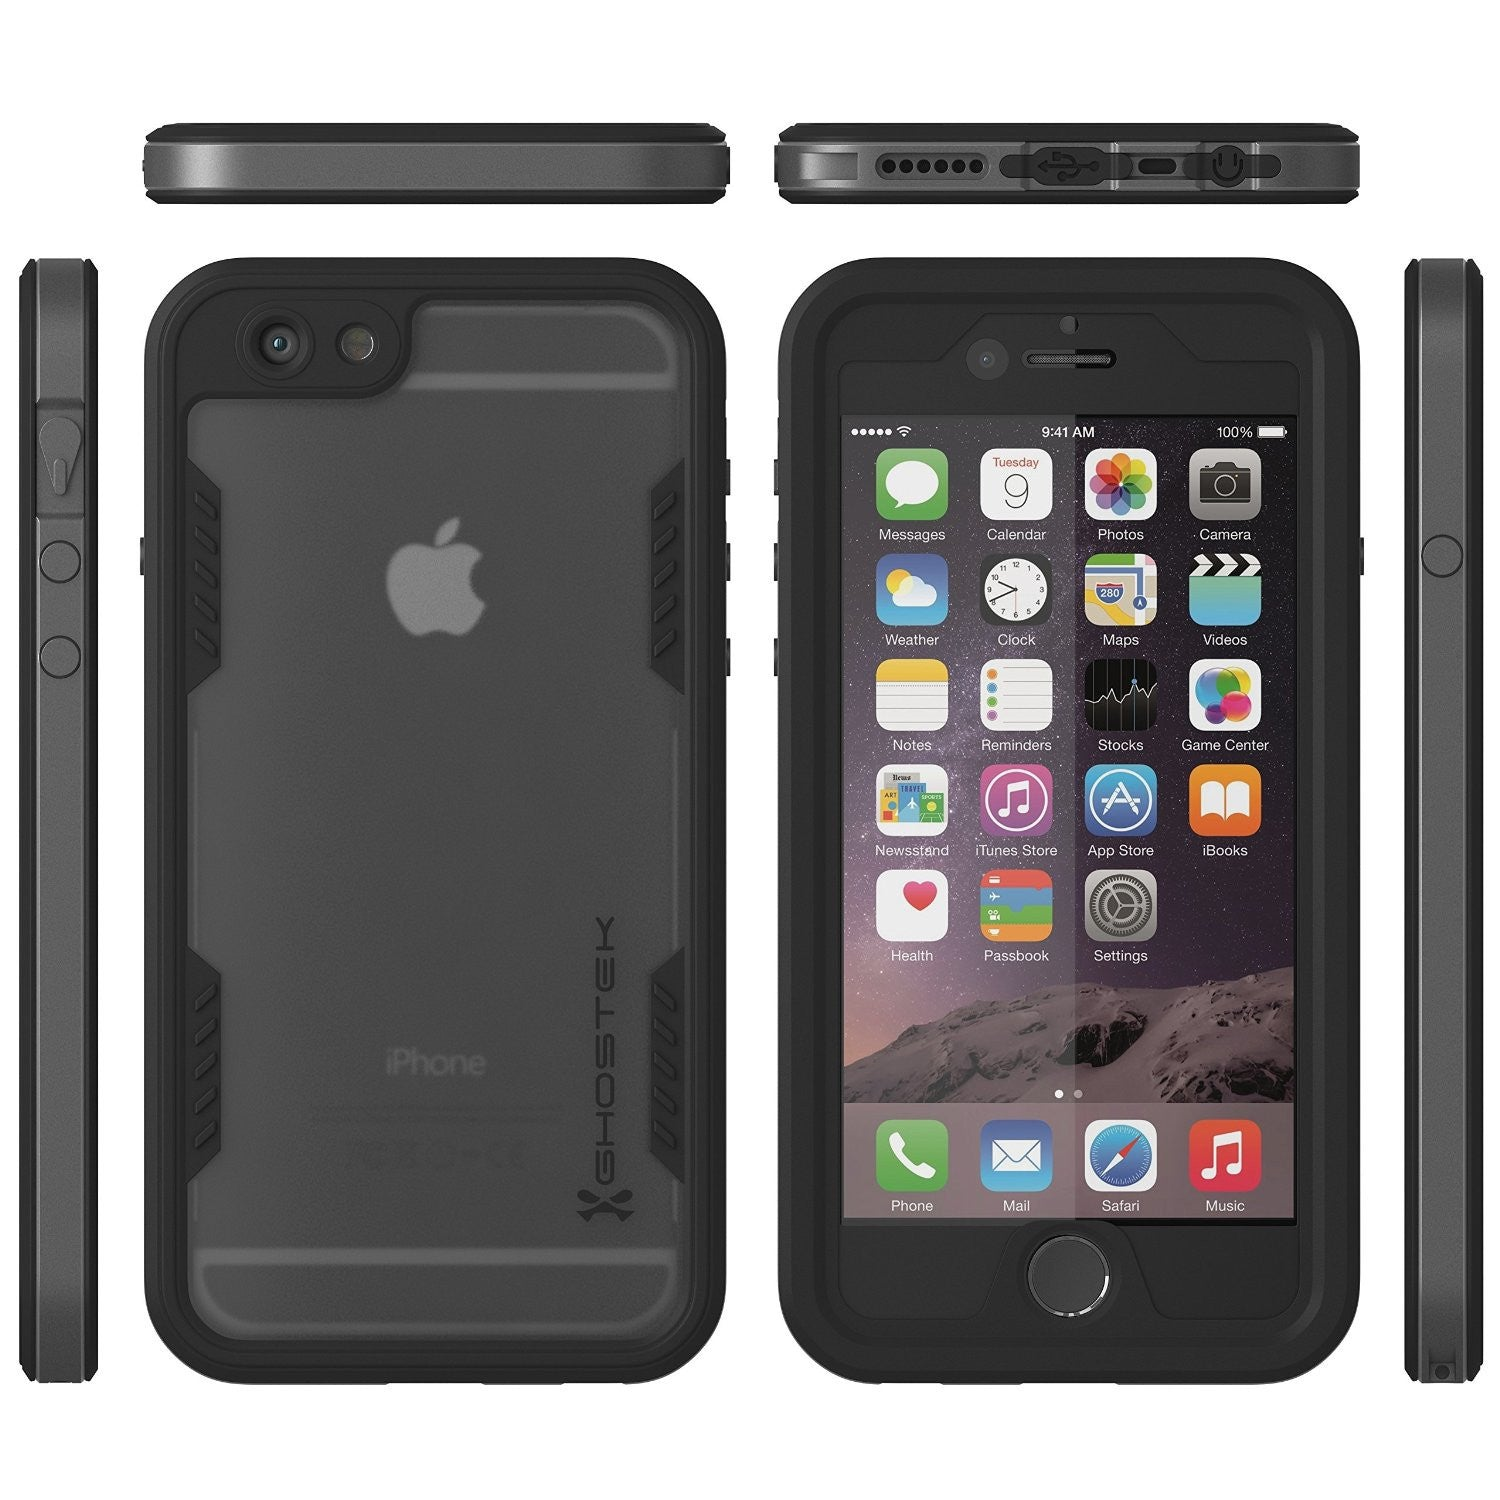 iPhone 6S+/6+ Plus Waterproof Case Ghostek Atomic 2.0 Space Gray w/ Attached Screen Protector | Slim